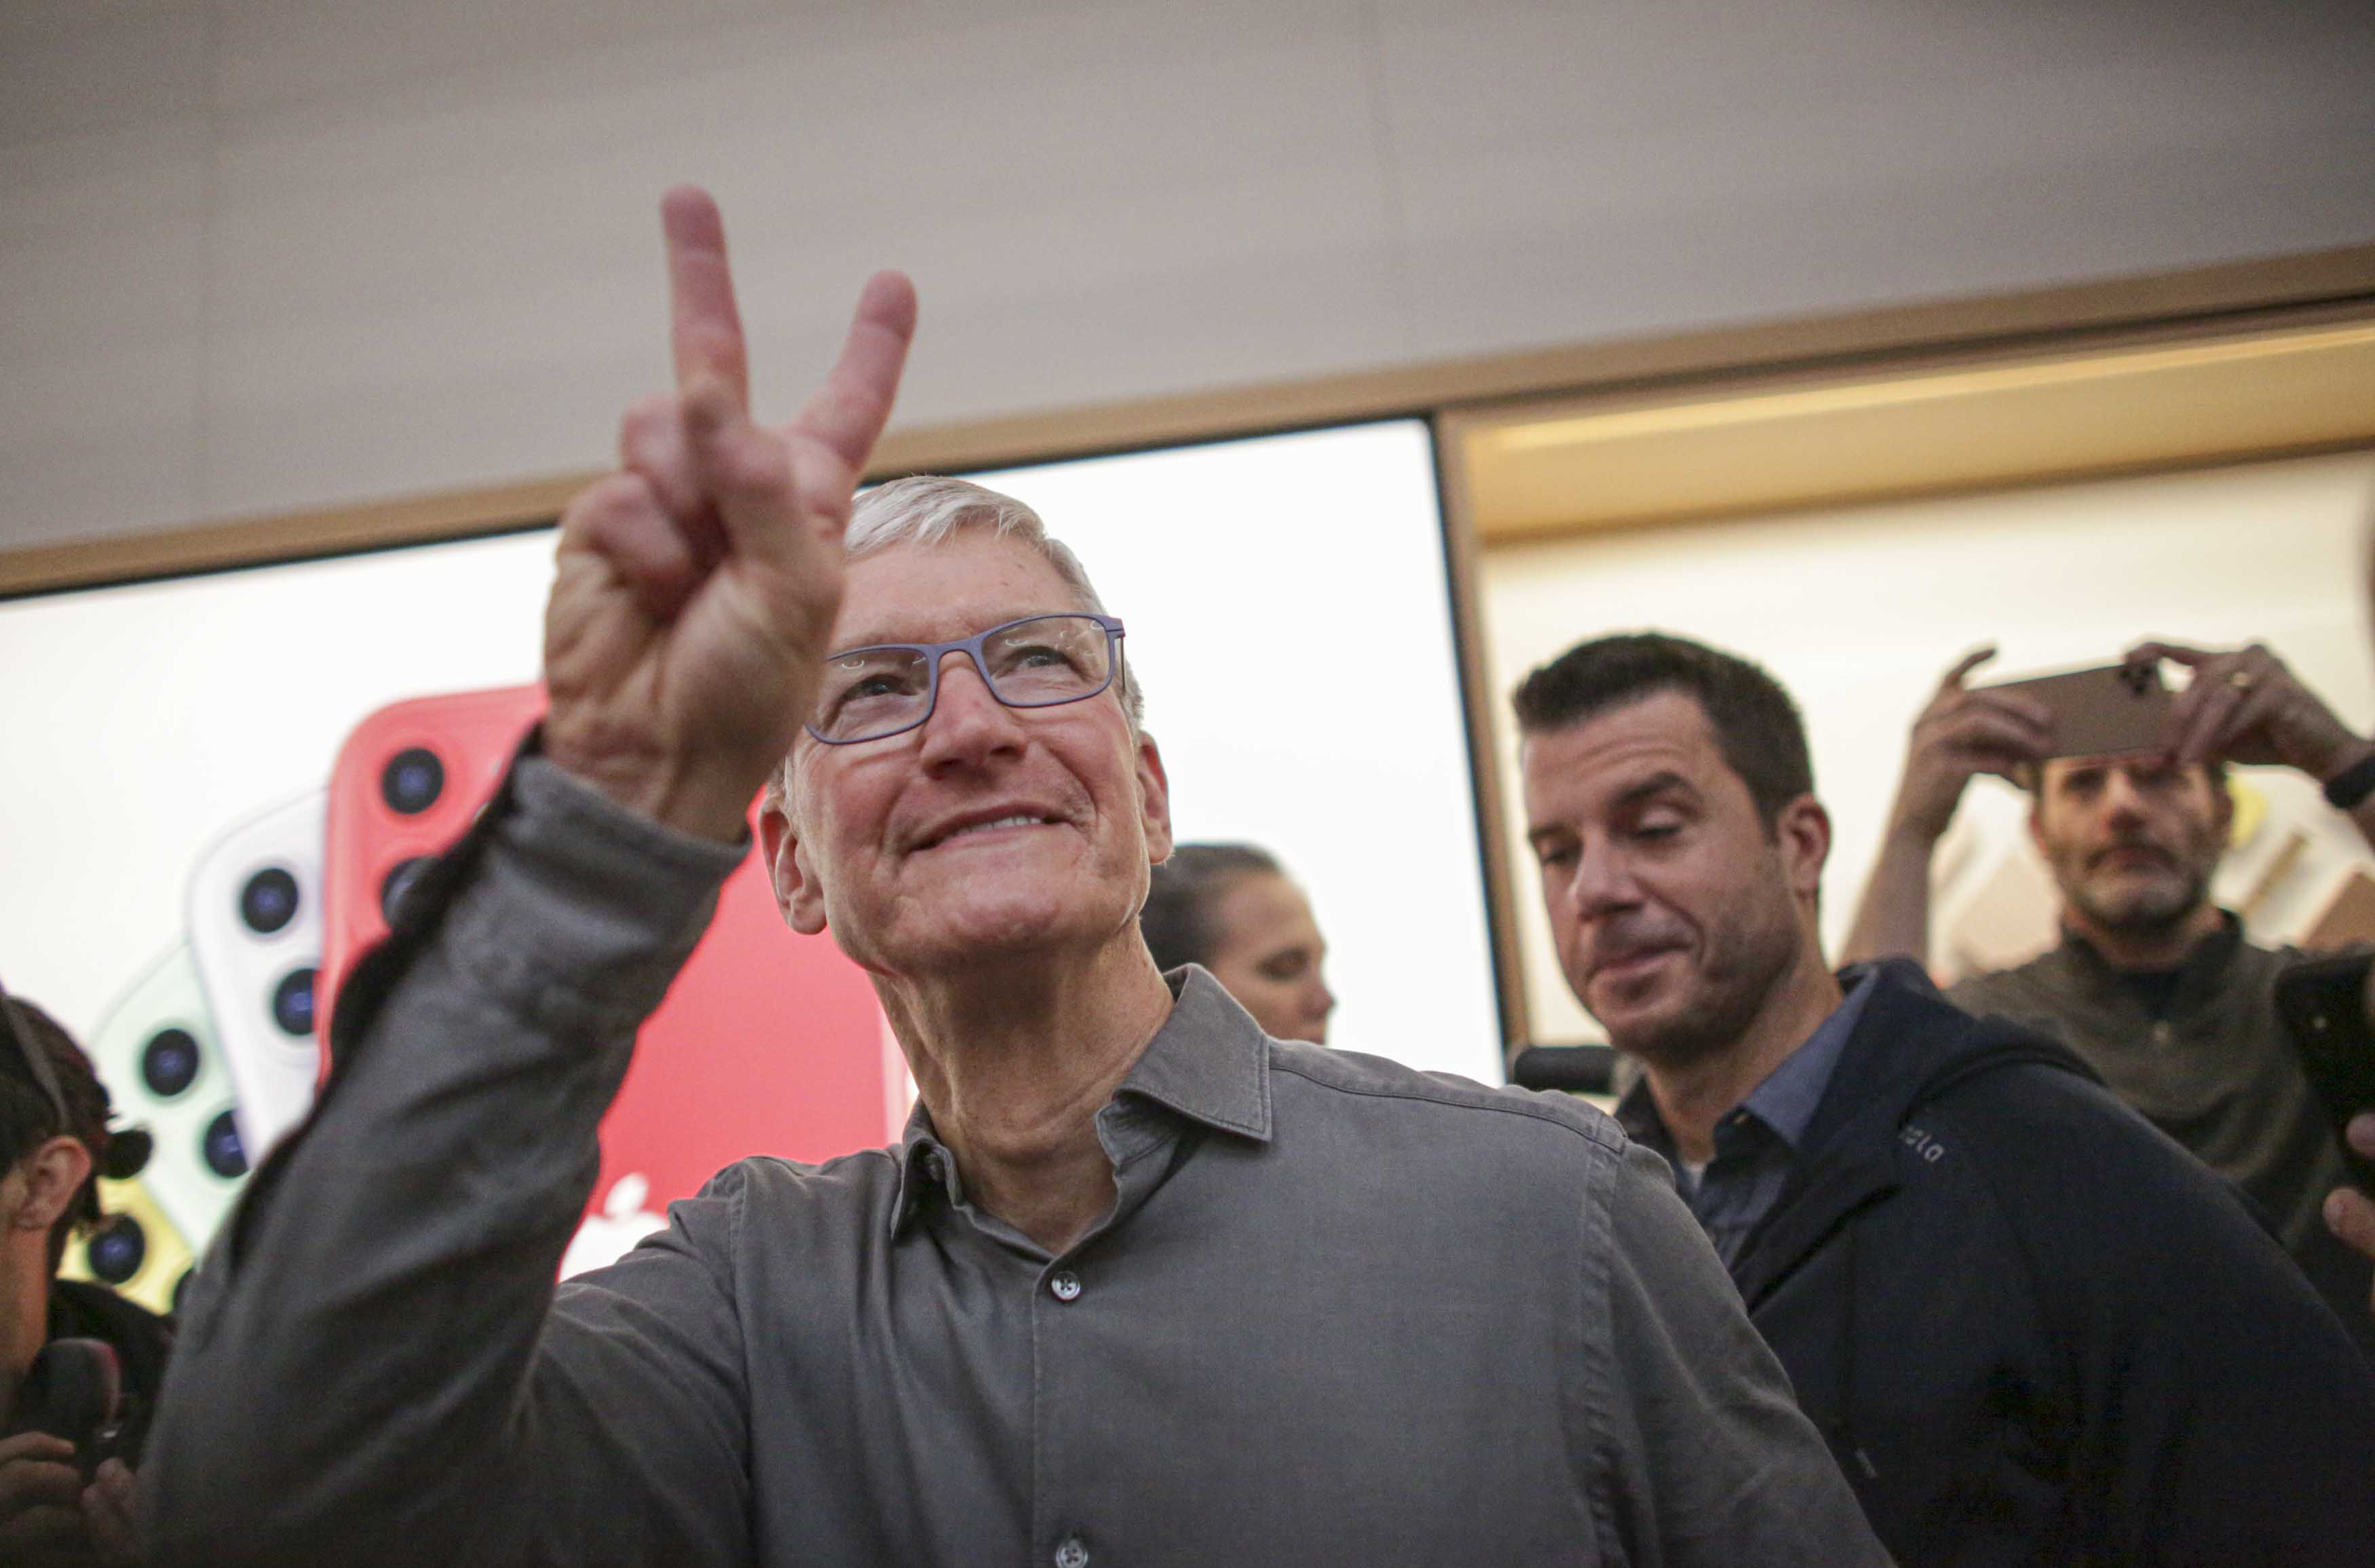 Investors may soon get a chance to buy Apple at lower levels: Strategist